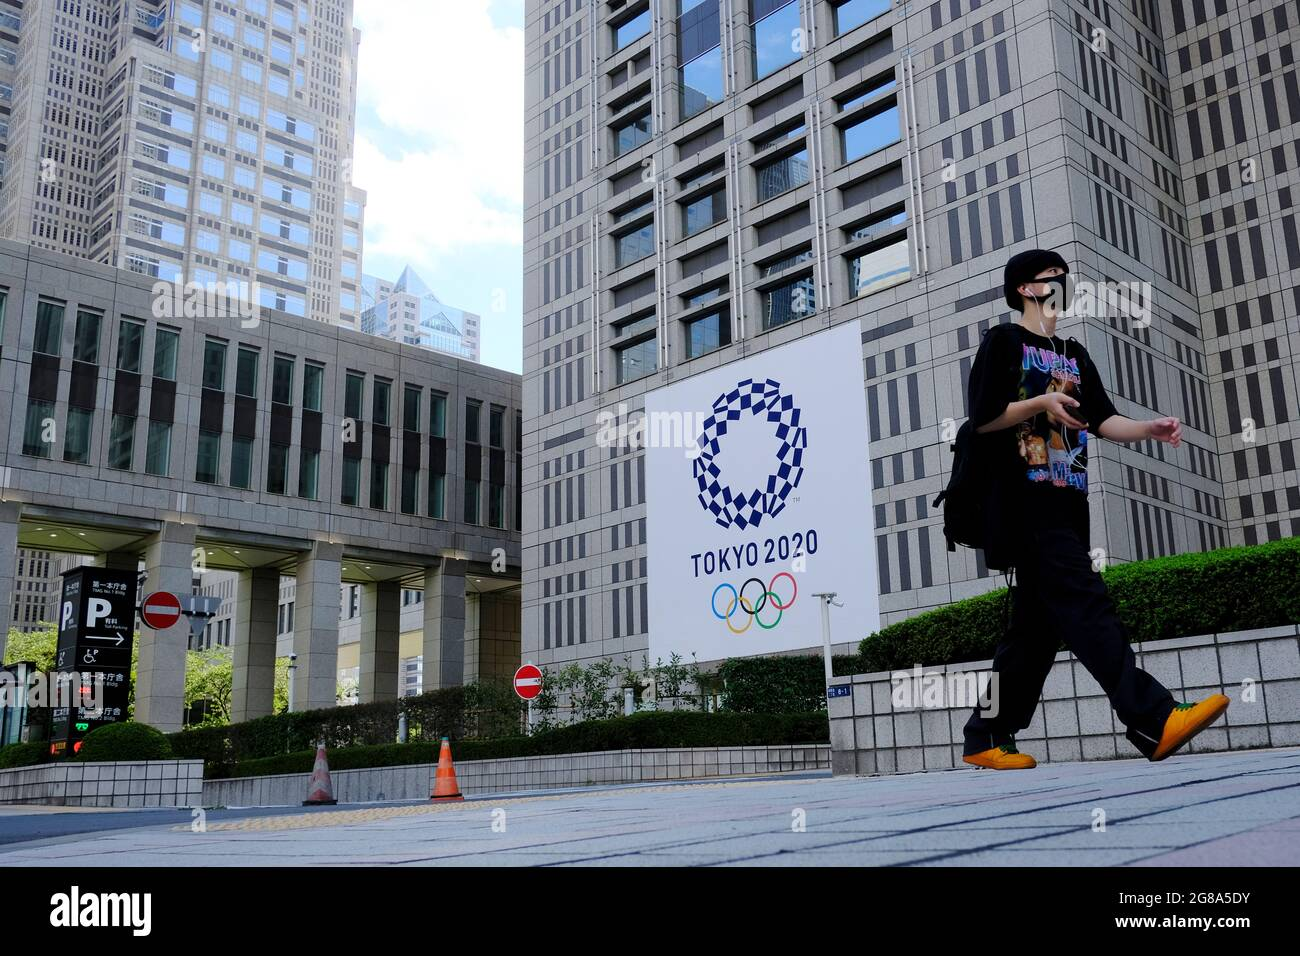 A man wearing a face mask as a preventive measure against the spread of coronavirus walks past a banner for the upcoming Tokyo 2020 Olympics in front of the Tokyo Metro Government building. (Photo by James Matsumoto / SOPA Images/Sipa USA) Stock Photo